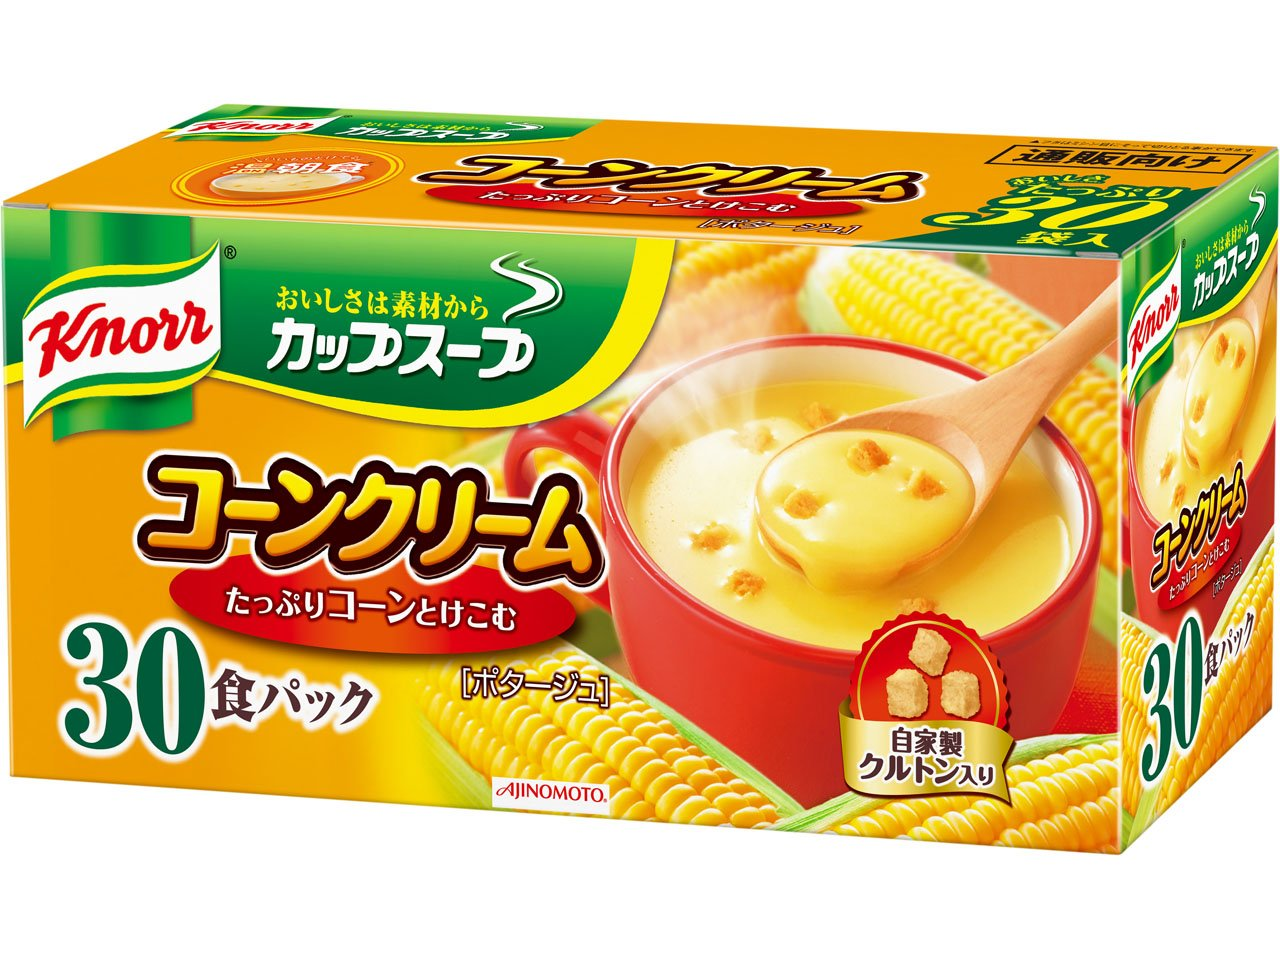 Knorr cup soup corn cream 30 packs